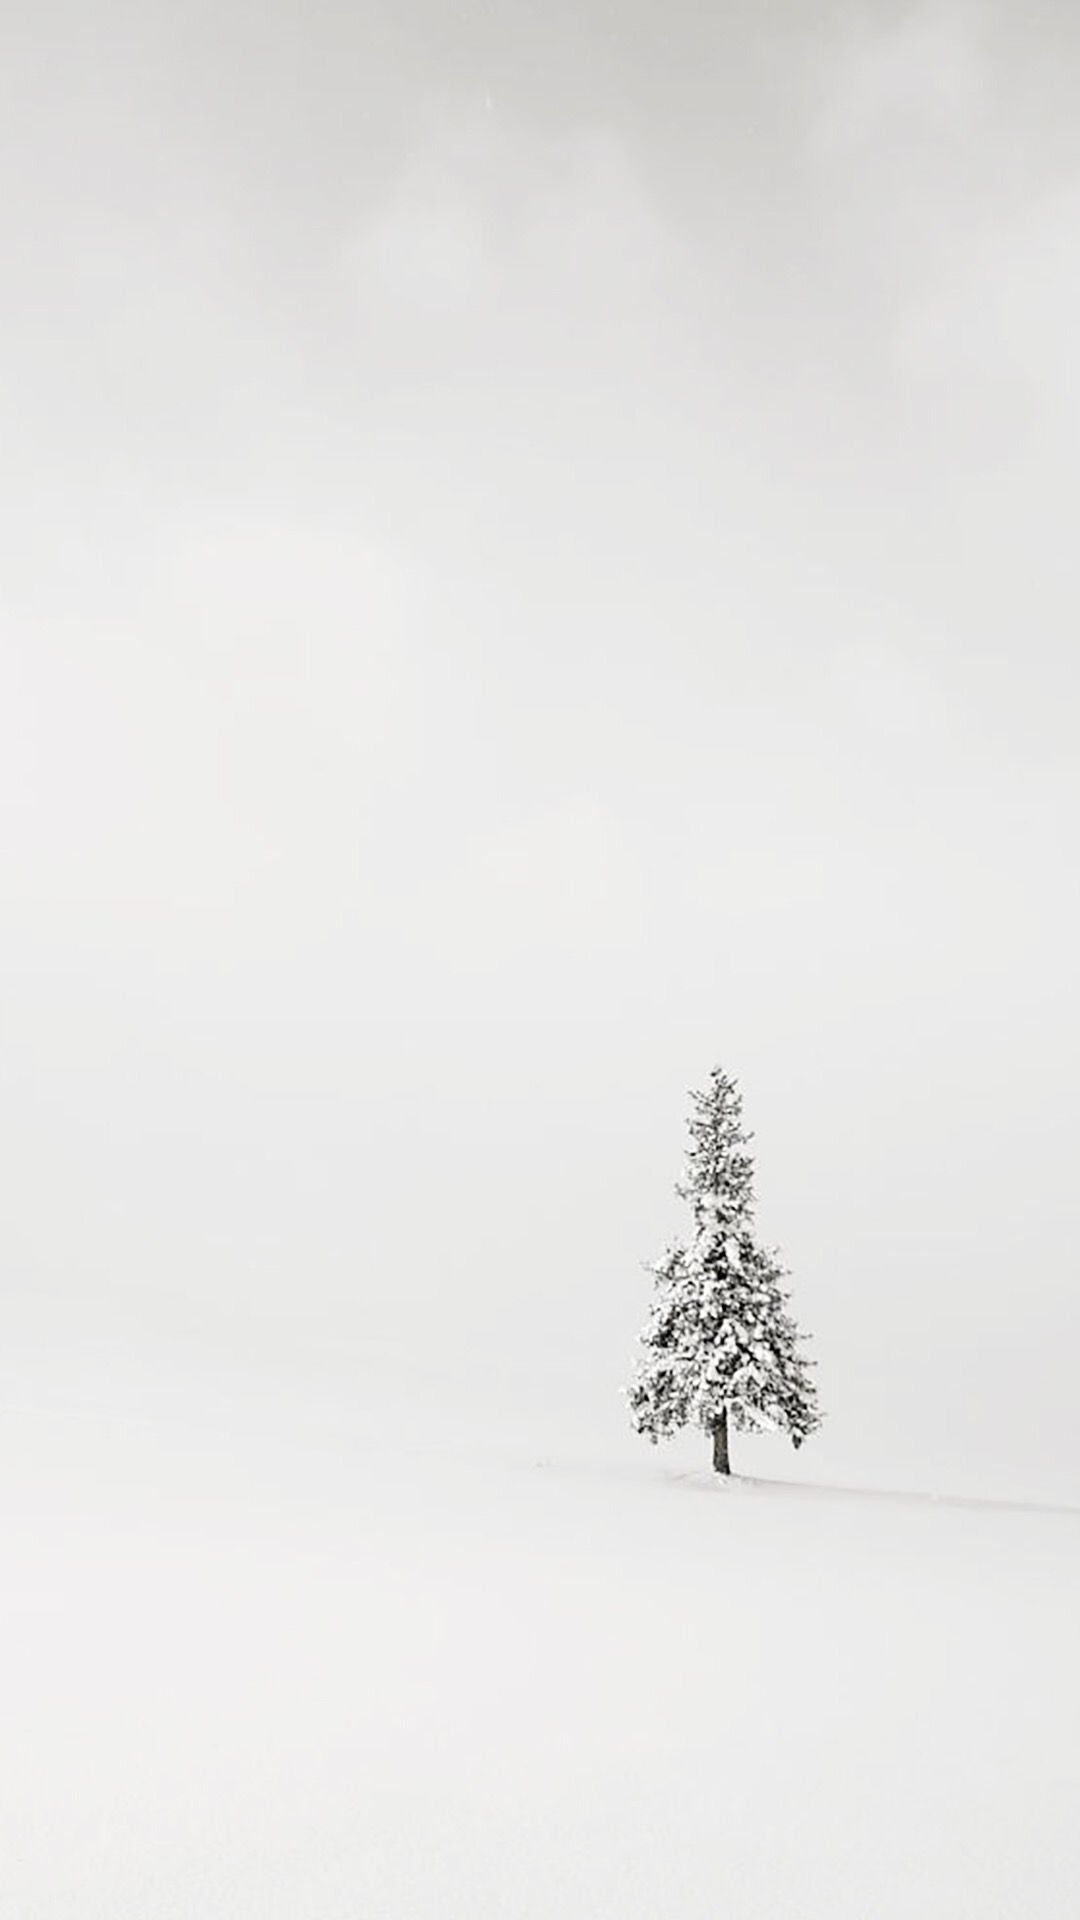 White Minimalist Iphone Wallpapers Top Free White